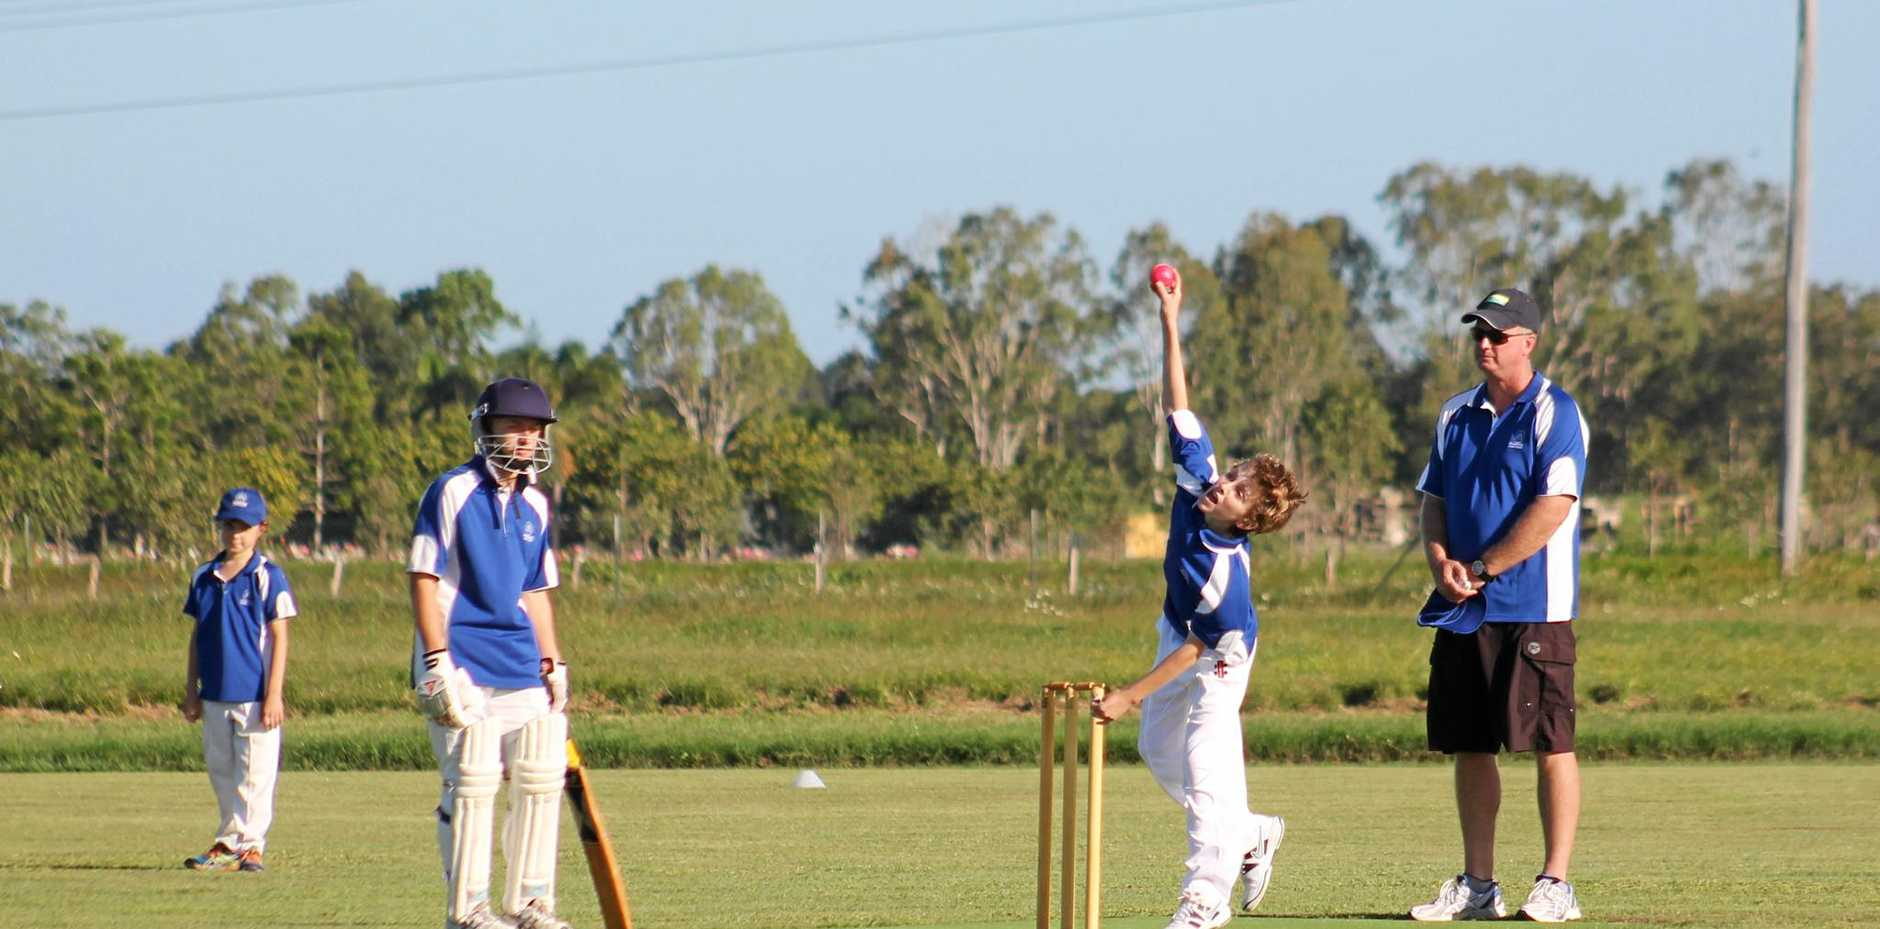 ON THE WICKET: Previous junior cricketers (pictured) in Friday afternoon action.